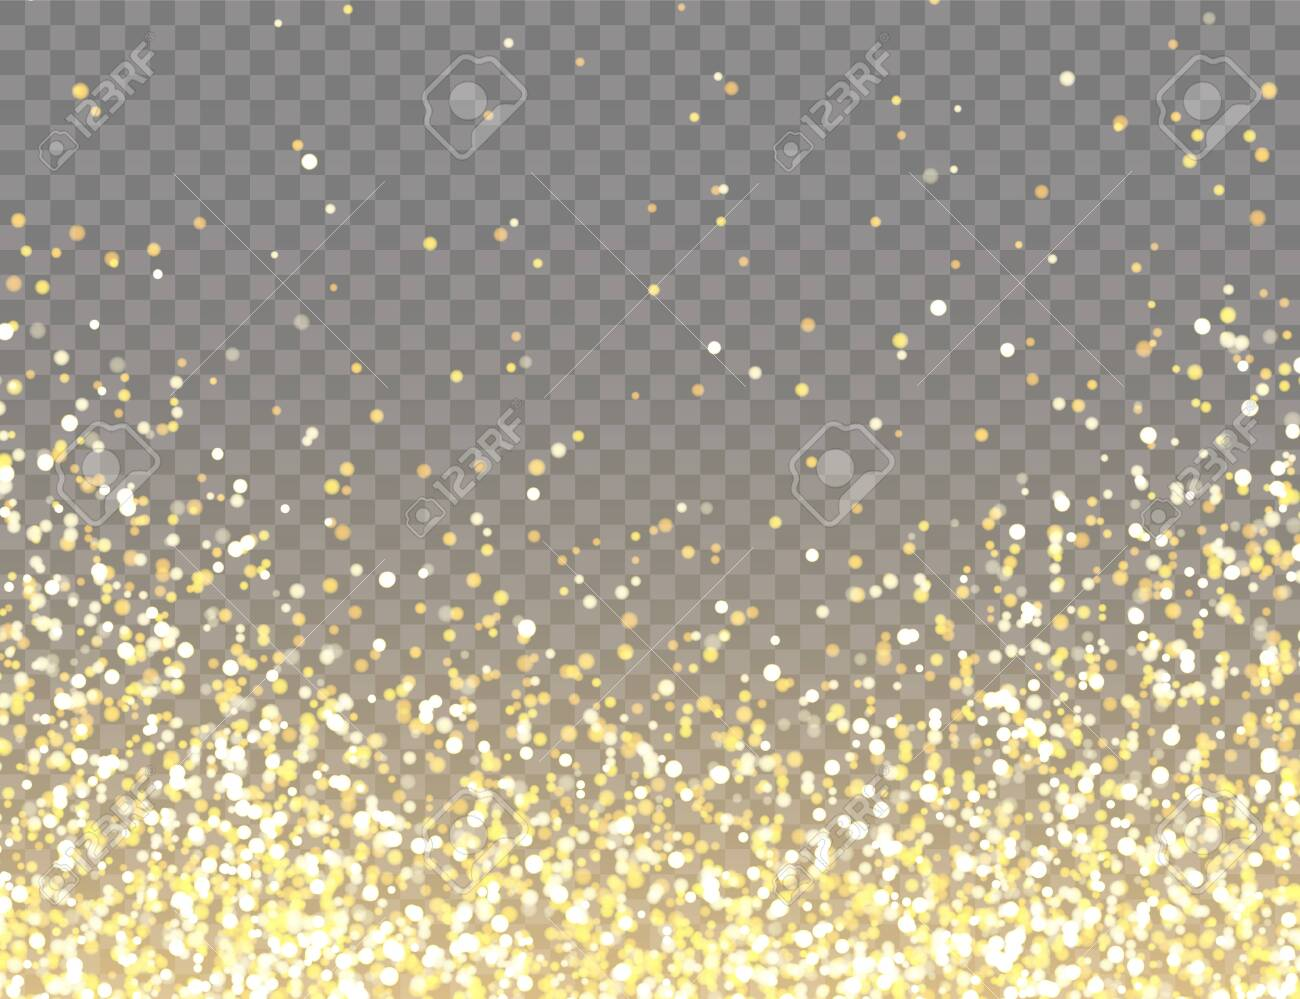 Sparkling Golden Glitter with Bokeh Lights on Transparent Vector Background. Falling Shiny Confetti with Gold Shards. Shining Light Effect for Christmas or New Year Greeting Card - 129395602